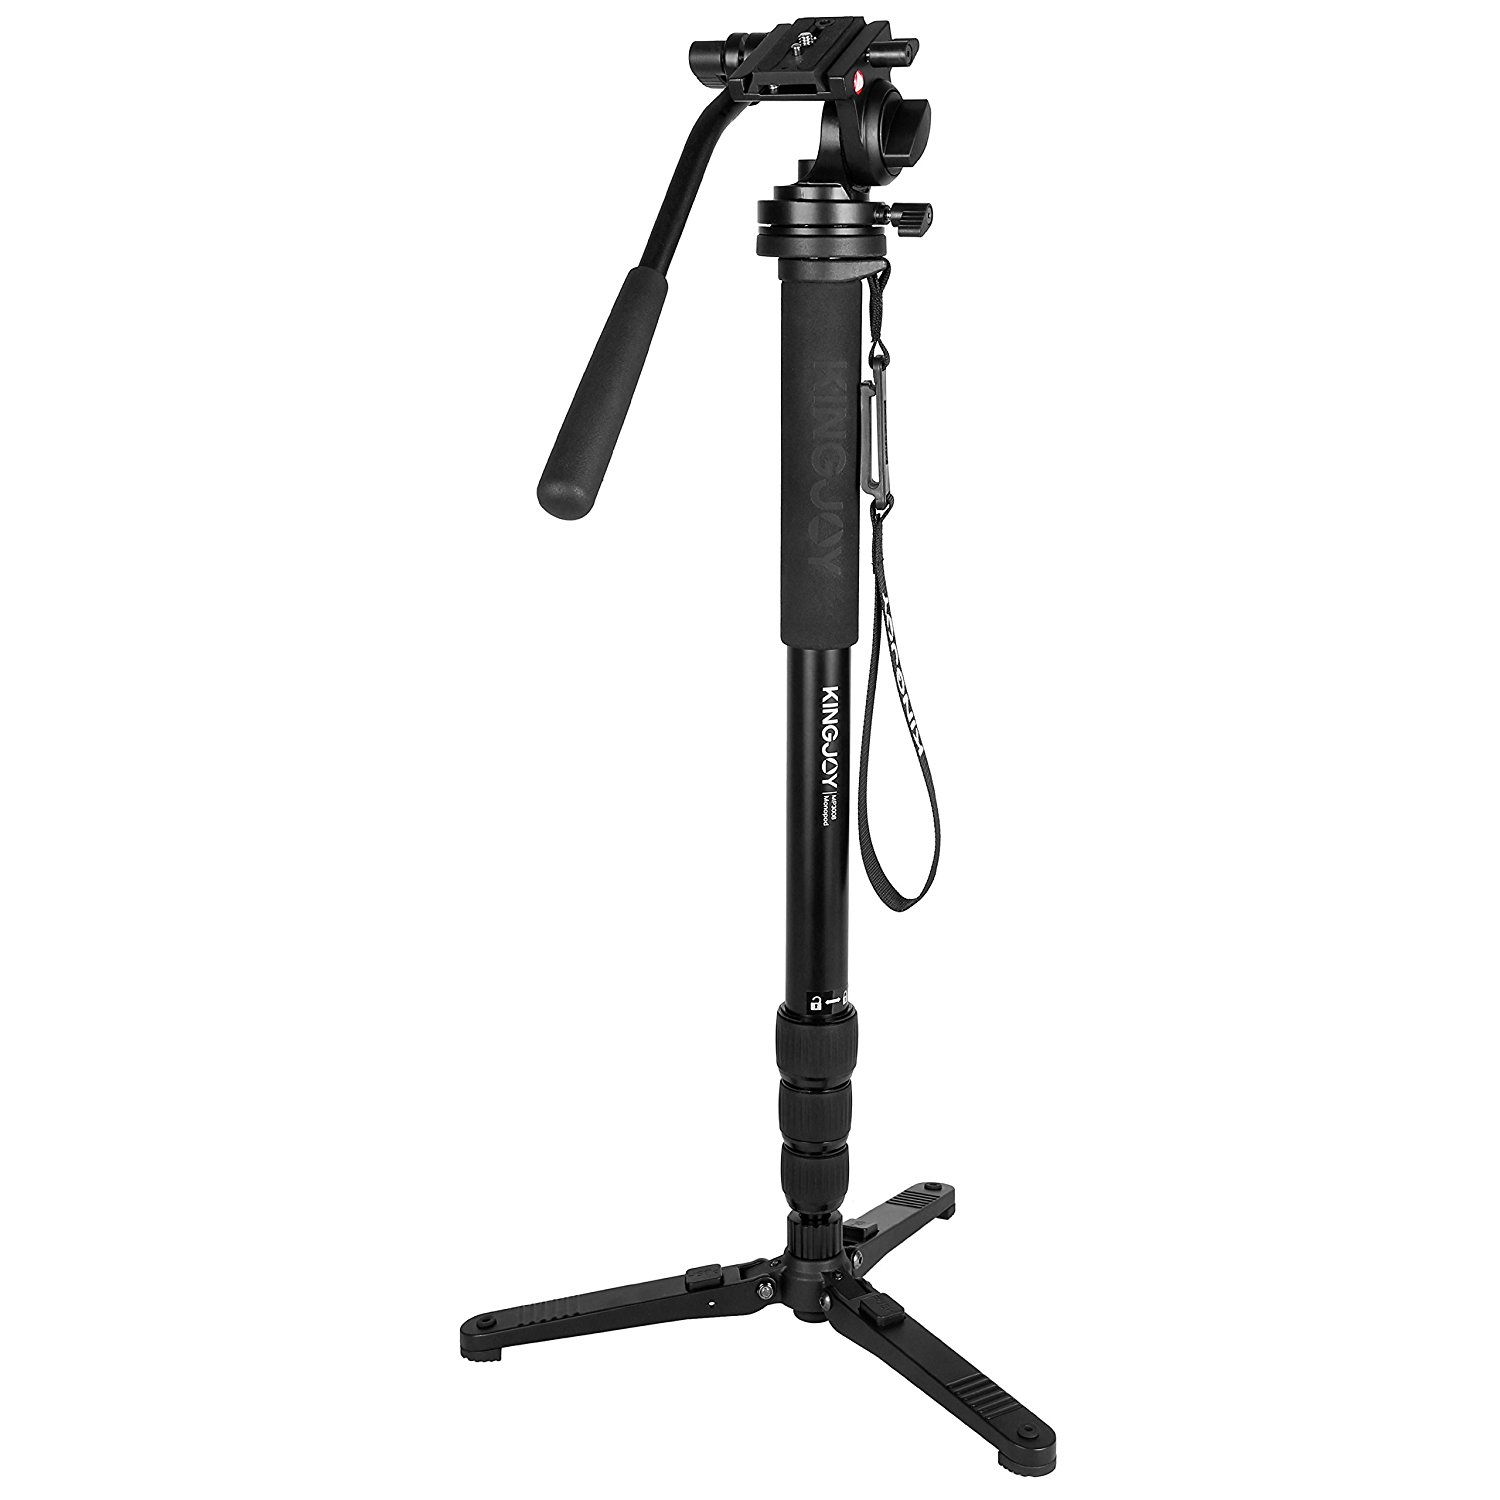 Kingjoy MP Series Video Monopod Tripod 4-Section Twist Lock Telescoping Legs with Fluid Damping Head and Folding Three Support Stand Base Compact Black MP3008+VT-3510